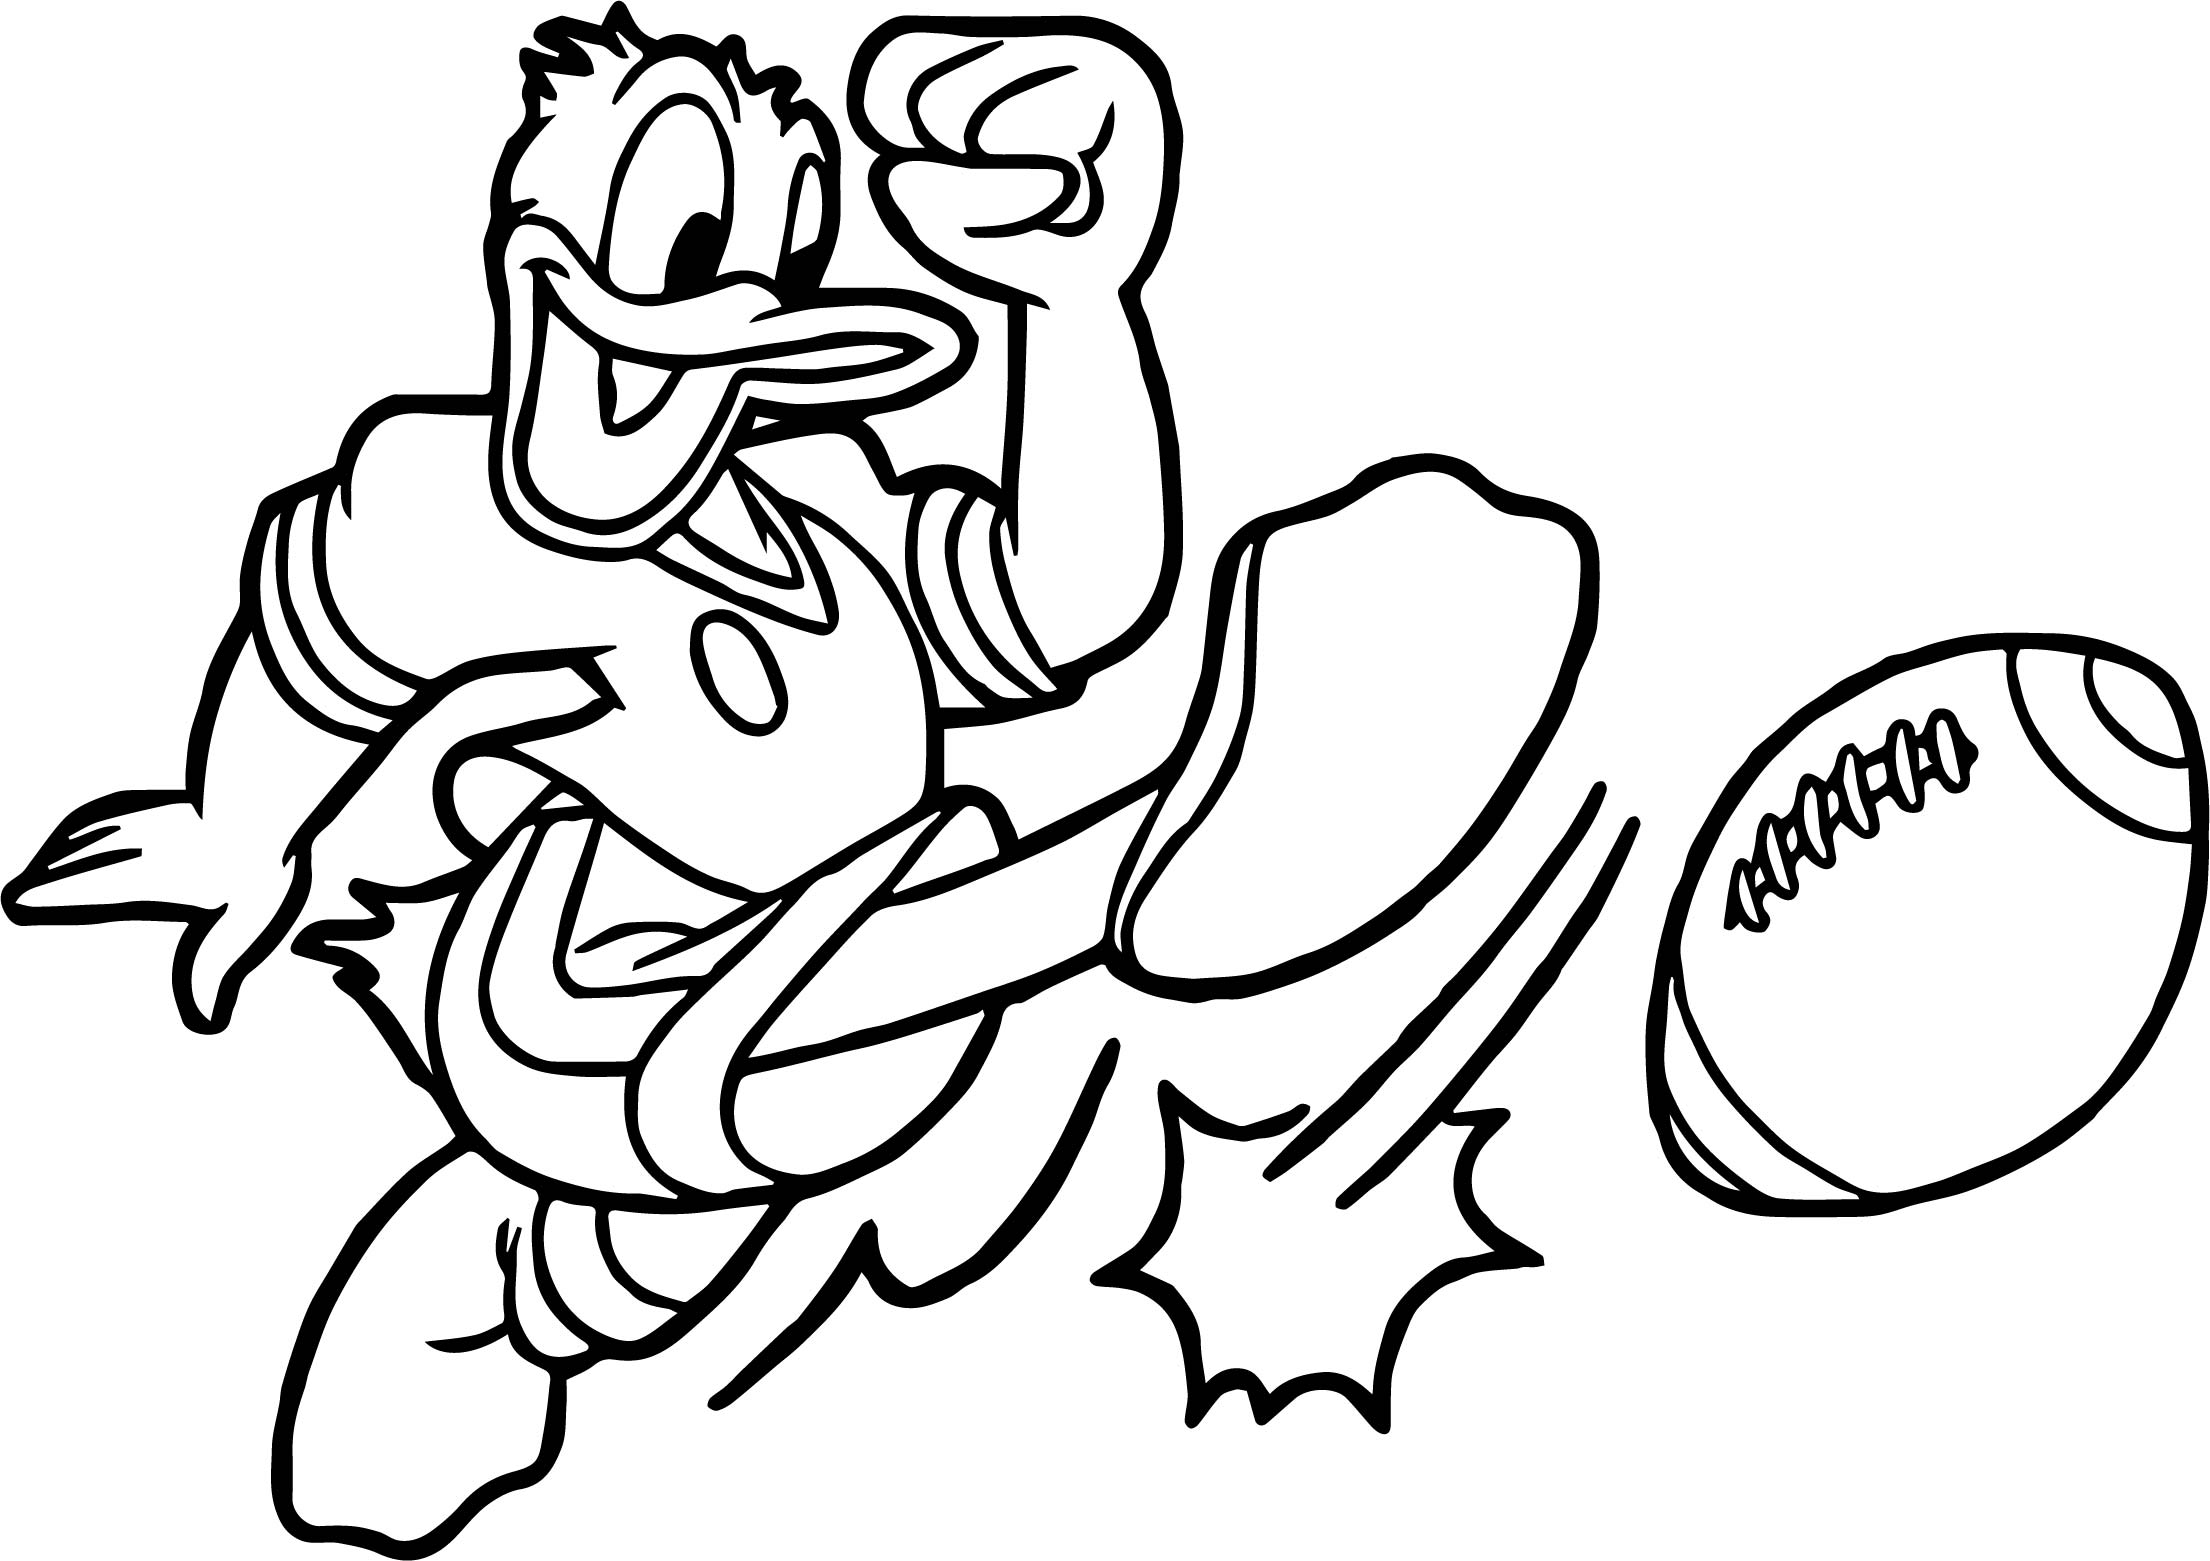 donald duck american playing football coloring page - Football Coloring Page